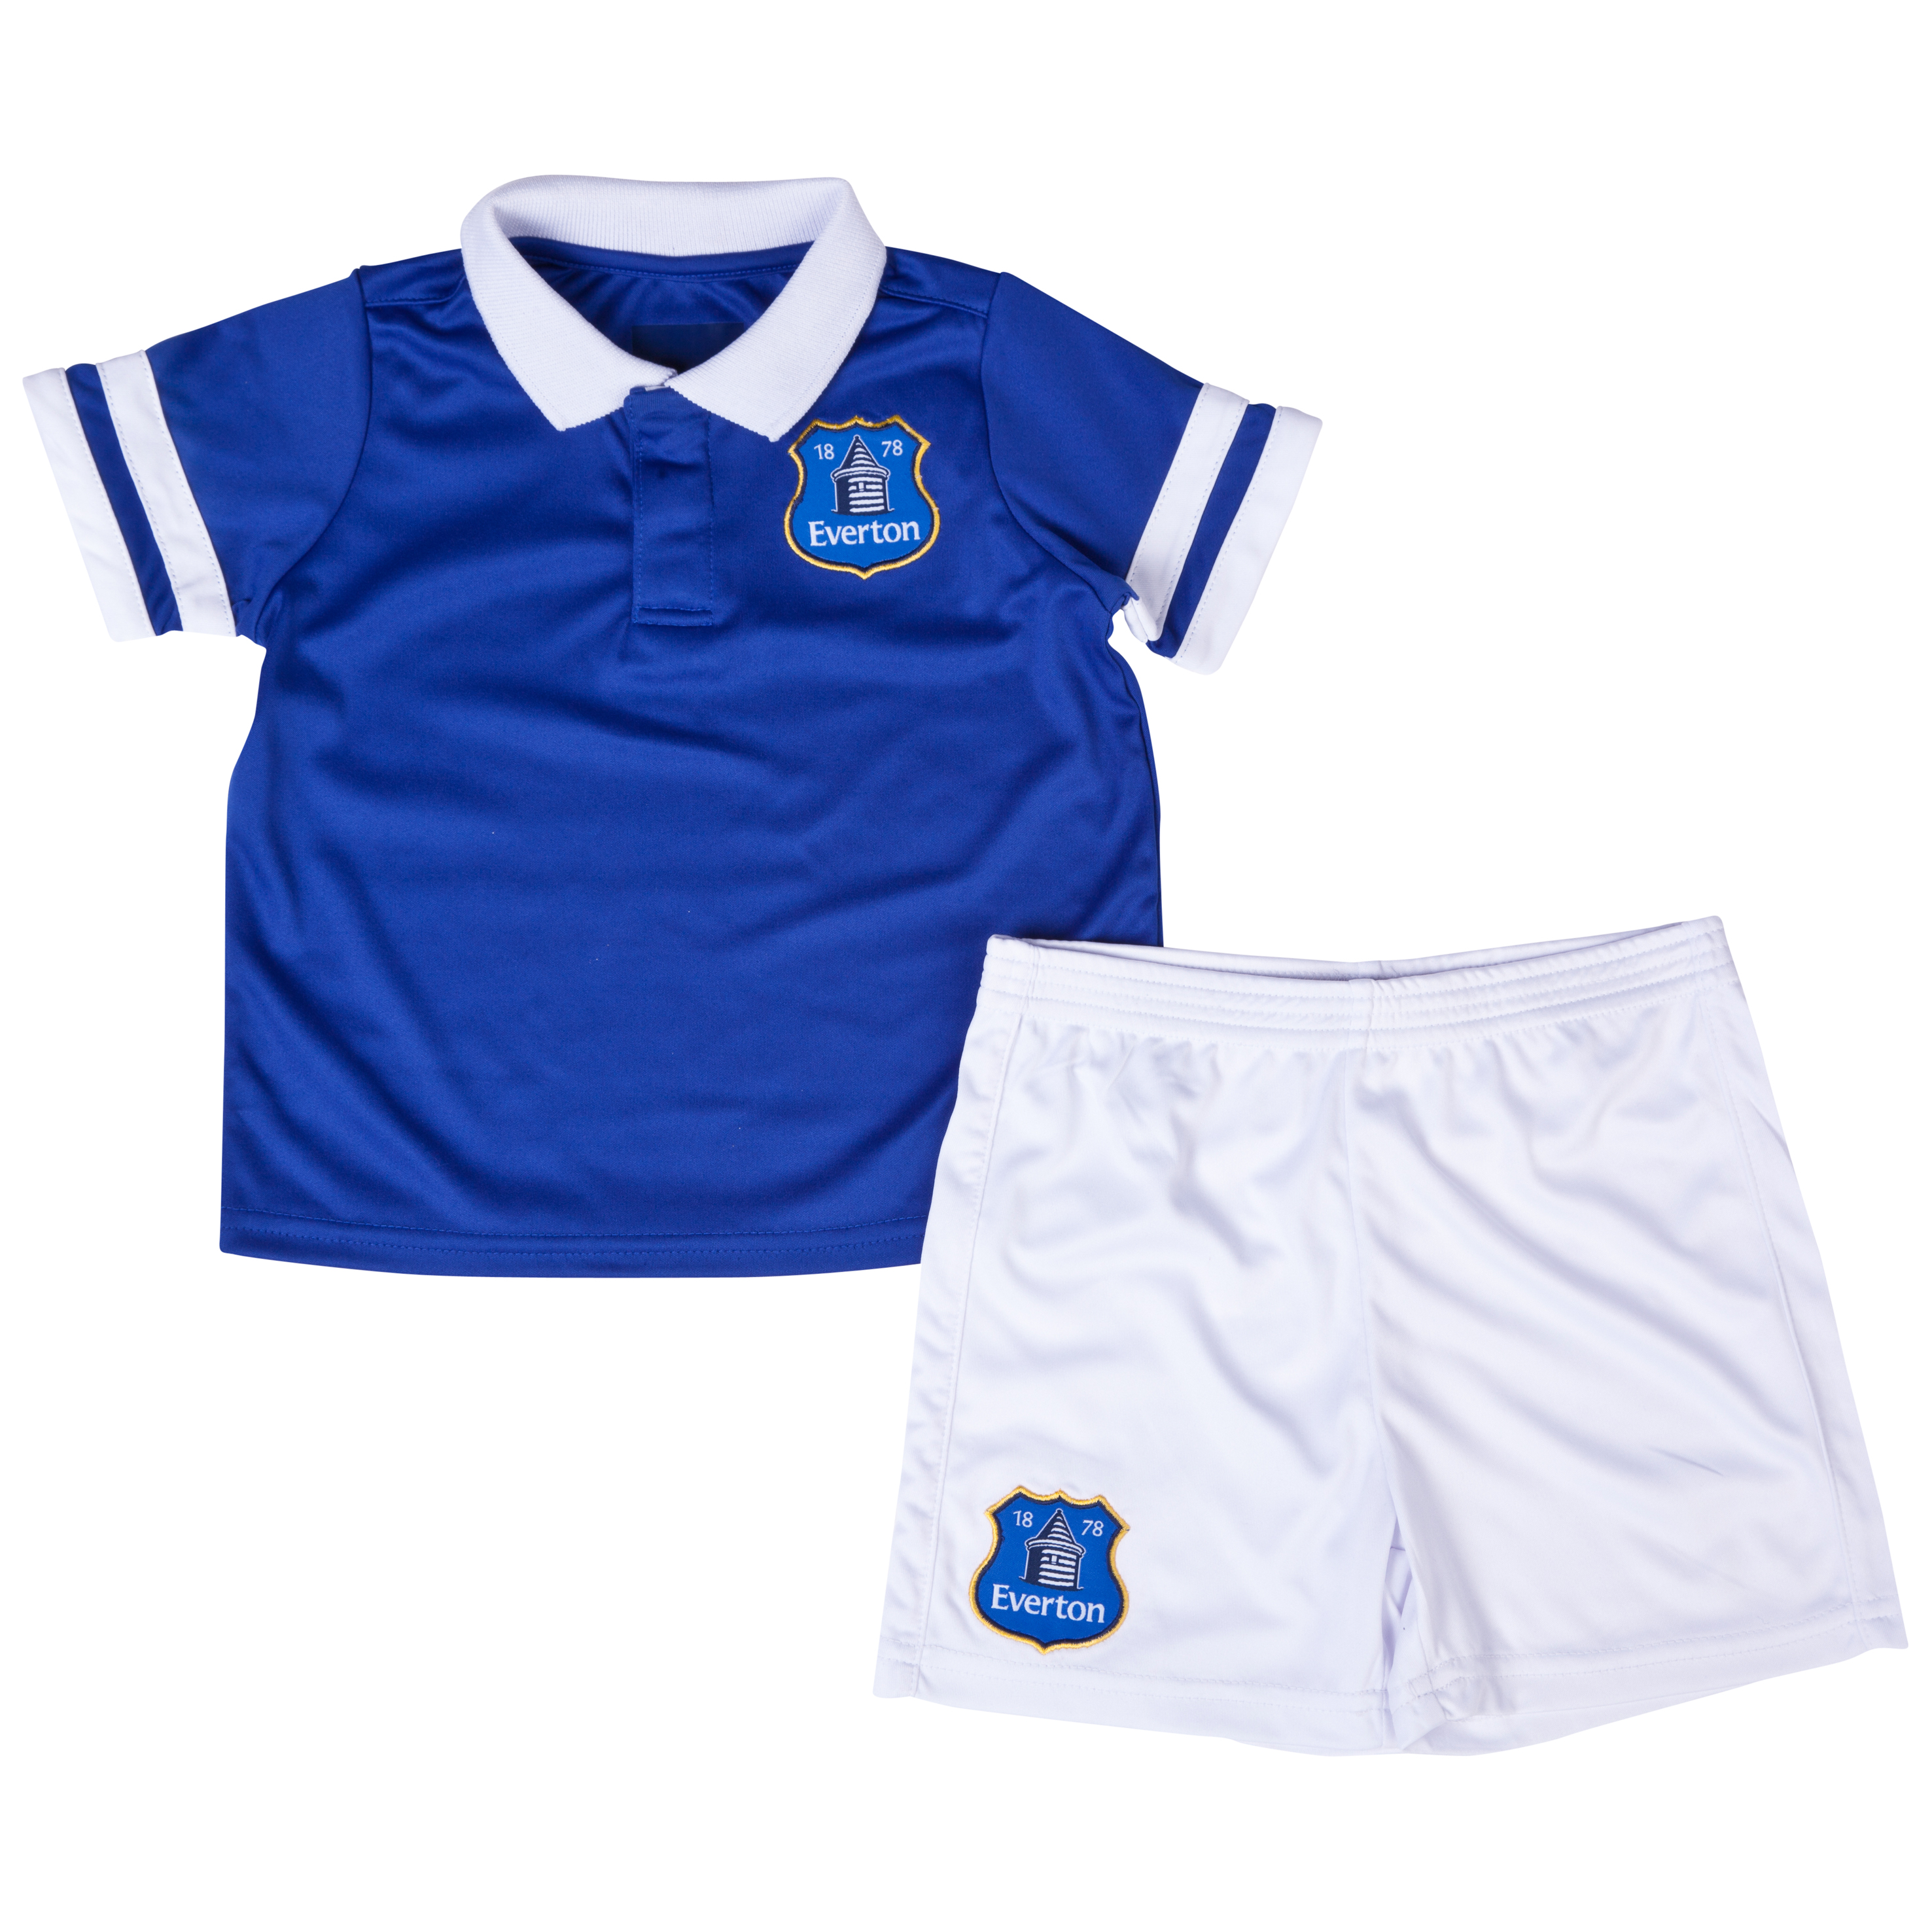 Everton 13/14 Home T-Shirt and Short Set Lt Blue